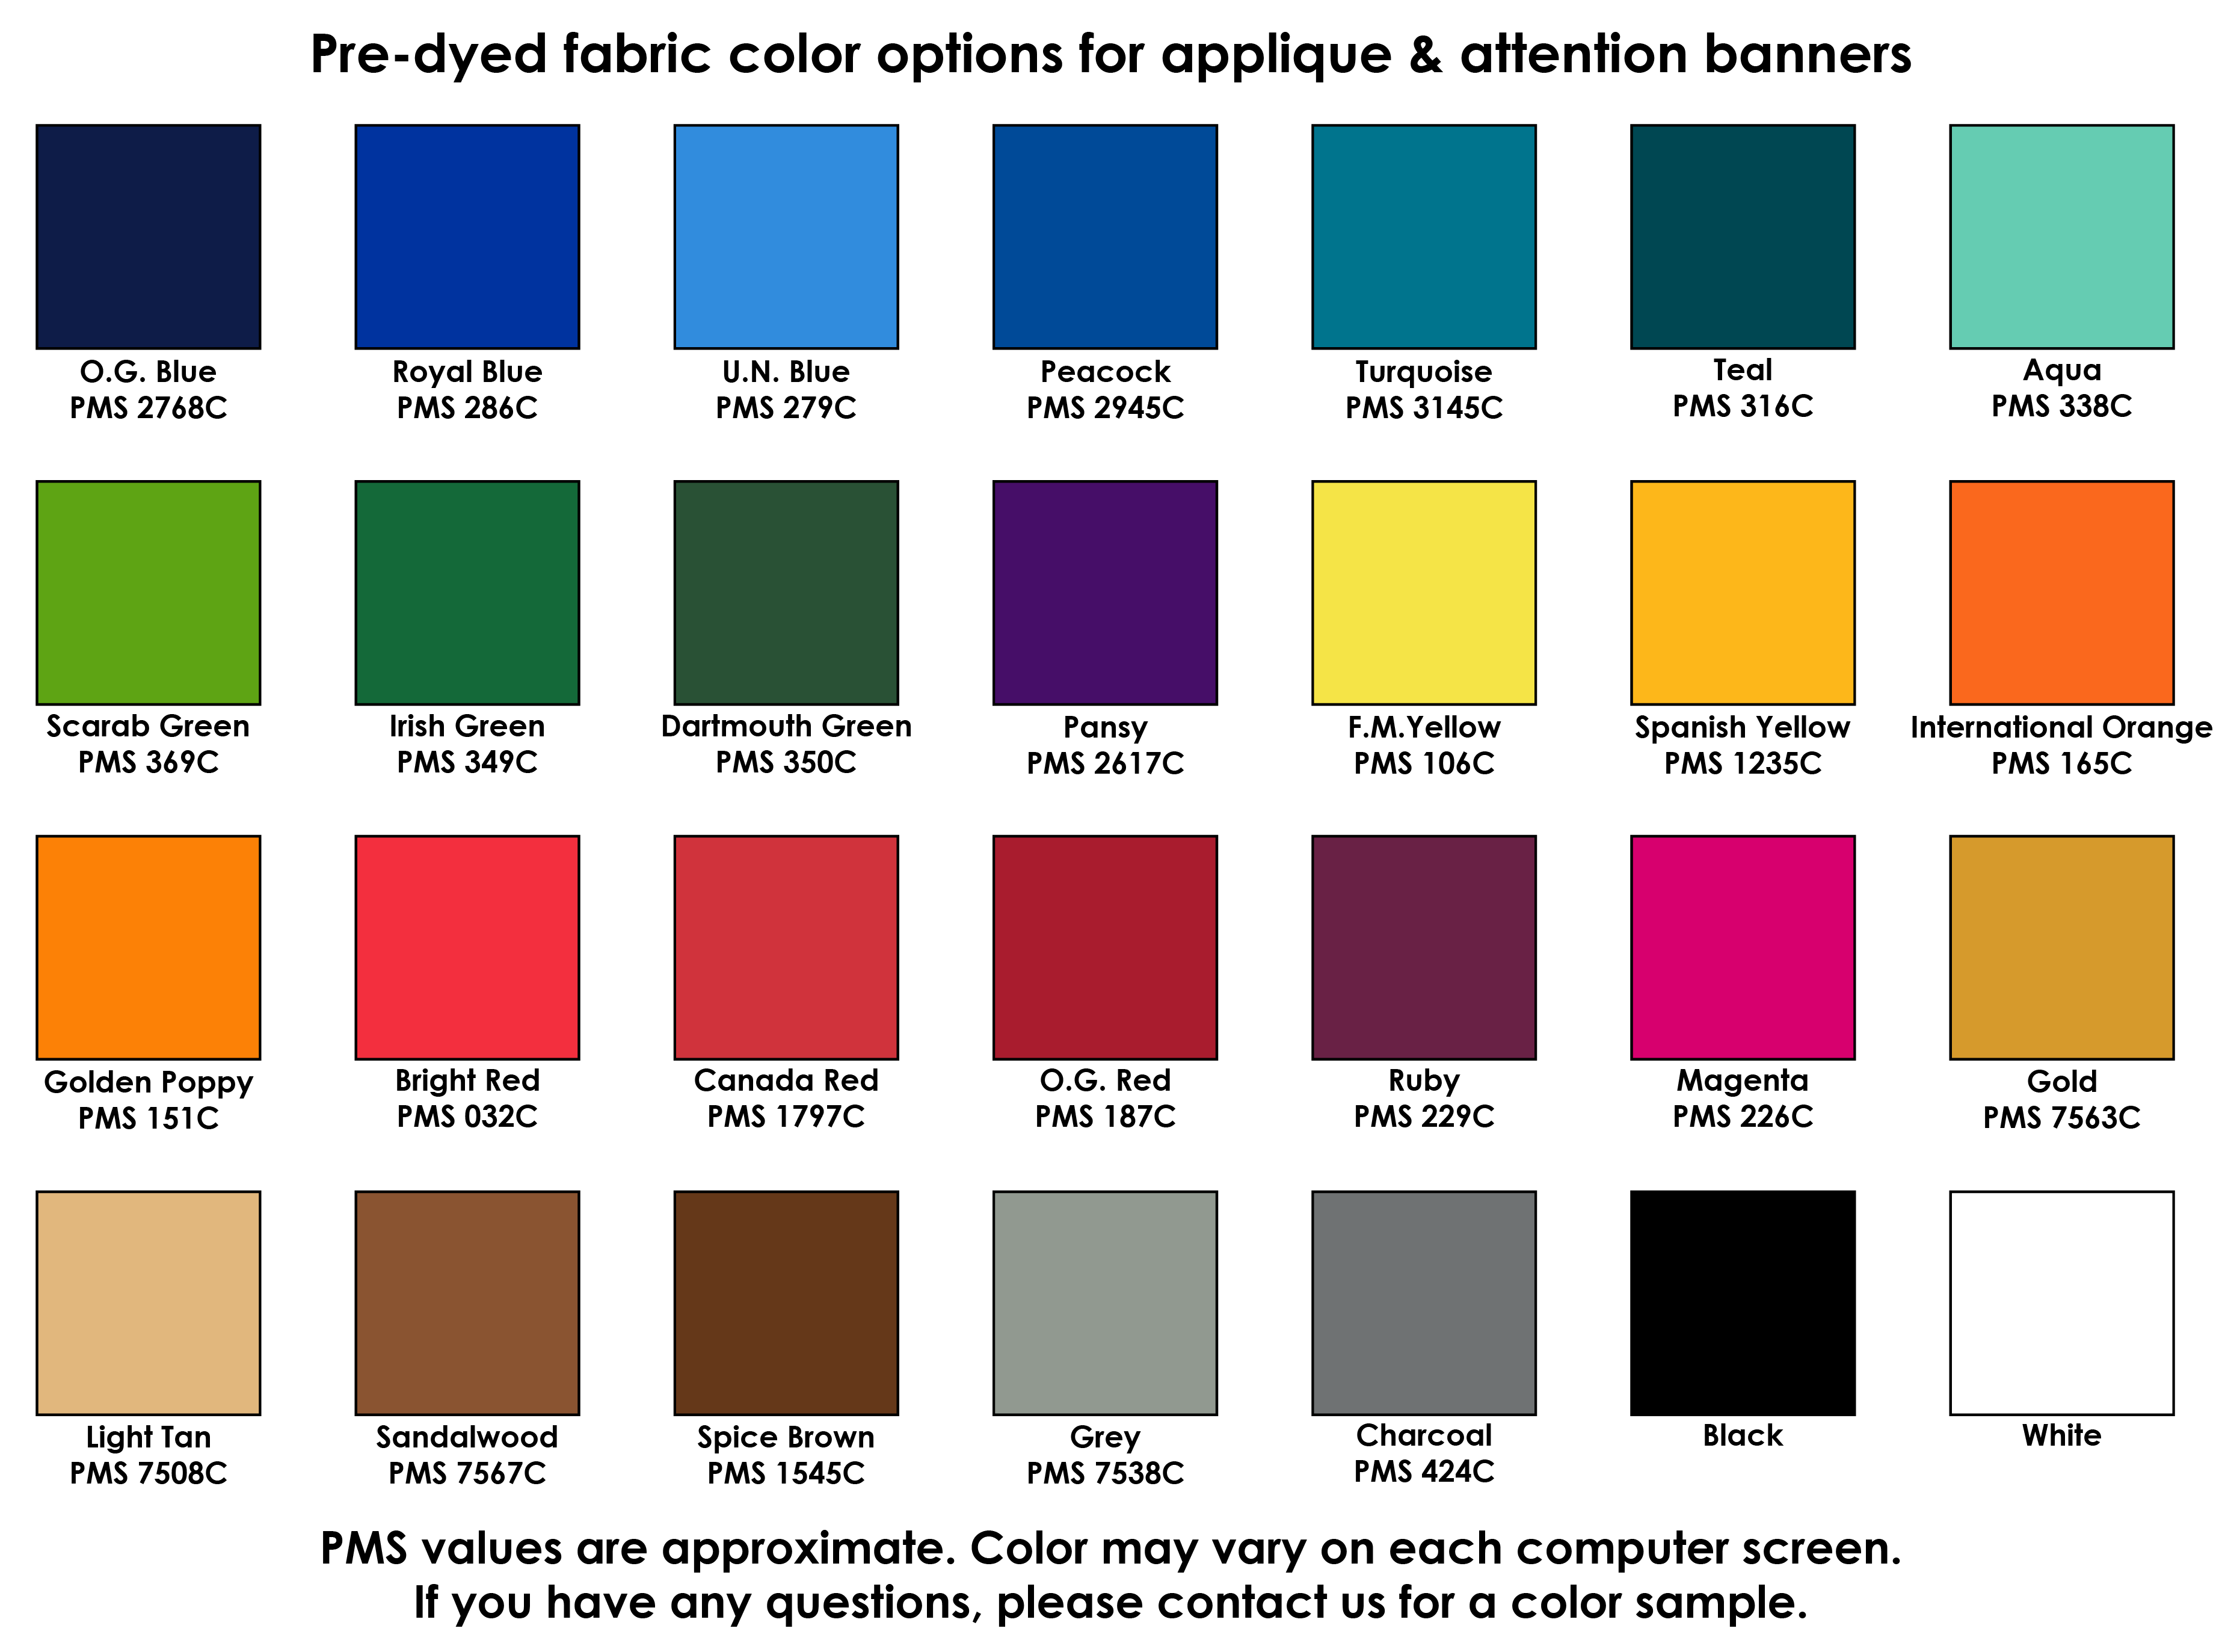 predyed-nylon-flag-colors-march2020-01.png